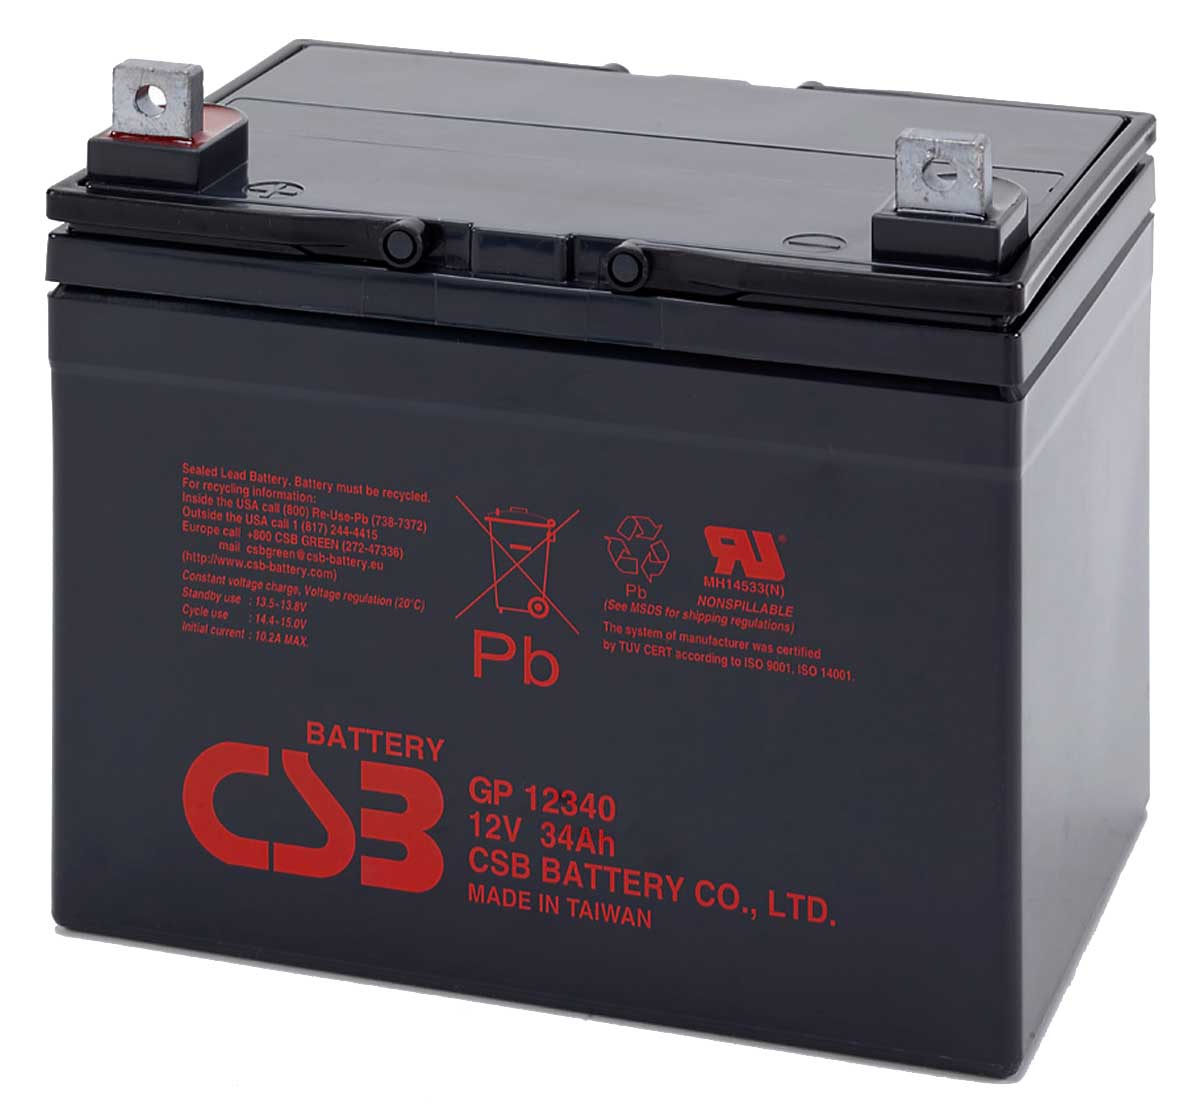 CSB GP12340 12V 34Ah Sealed Lead Acid Battery